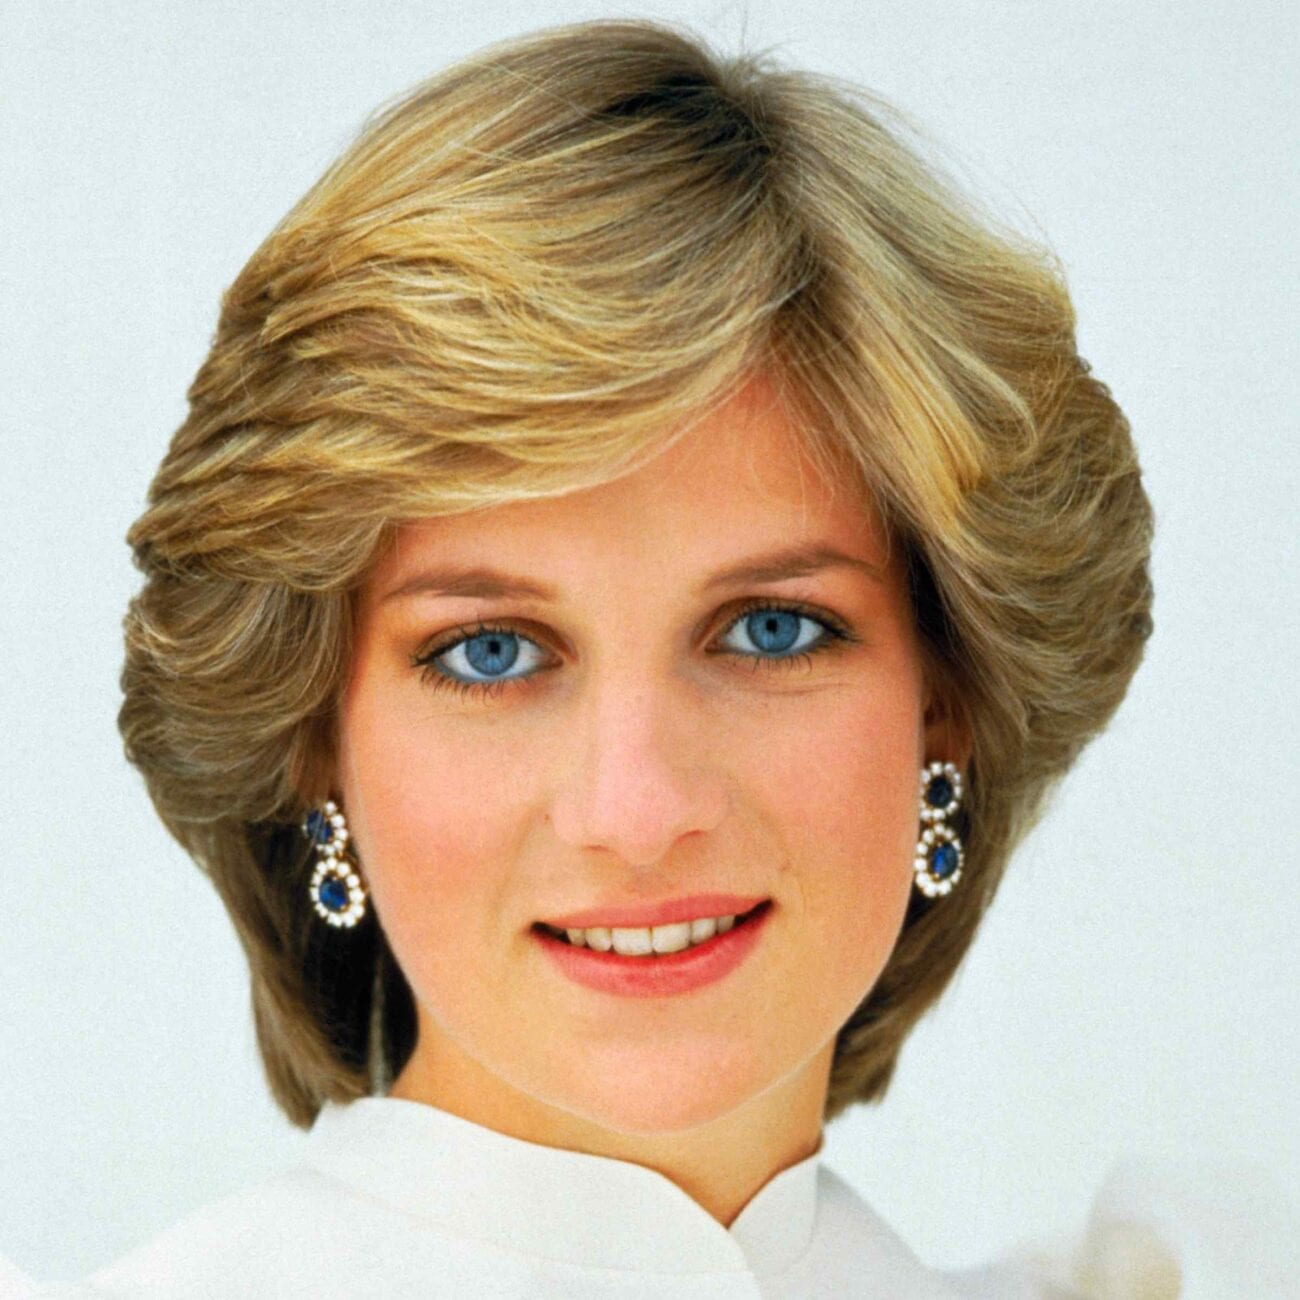 Check out these looks from the royal icon herself. Princess Diana has a lot of great looks, here are our favorites.